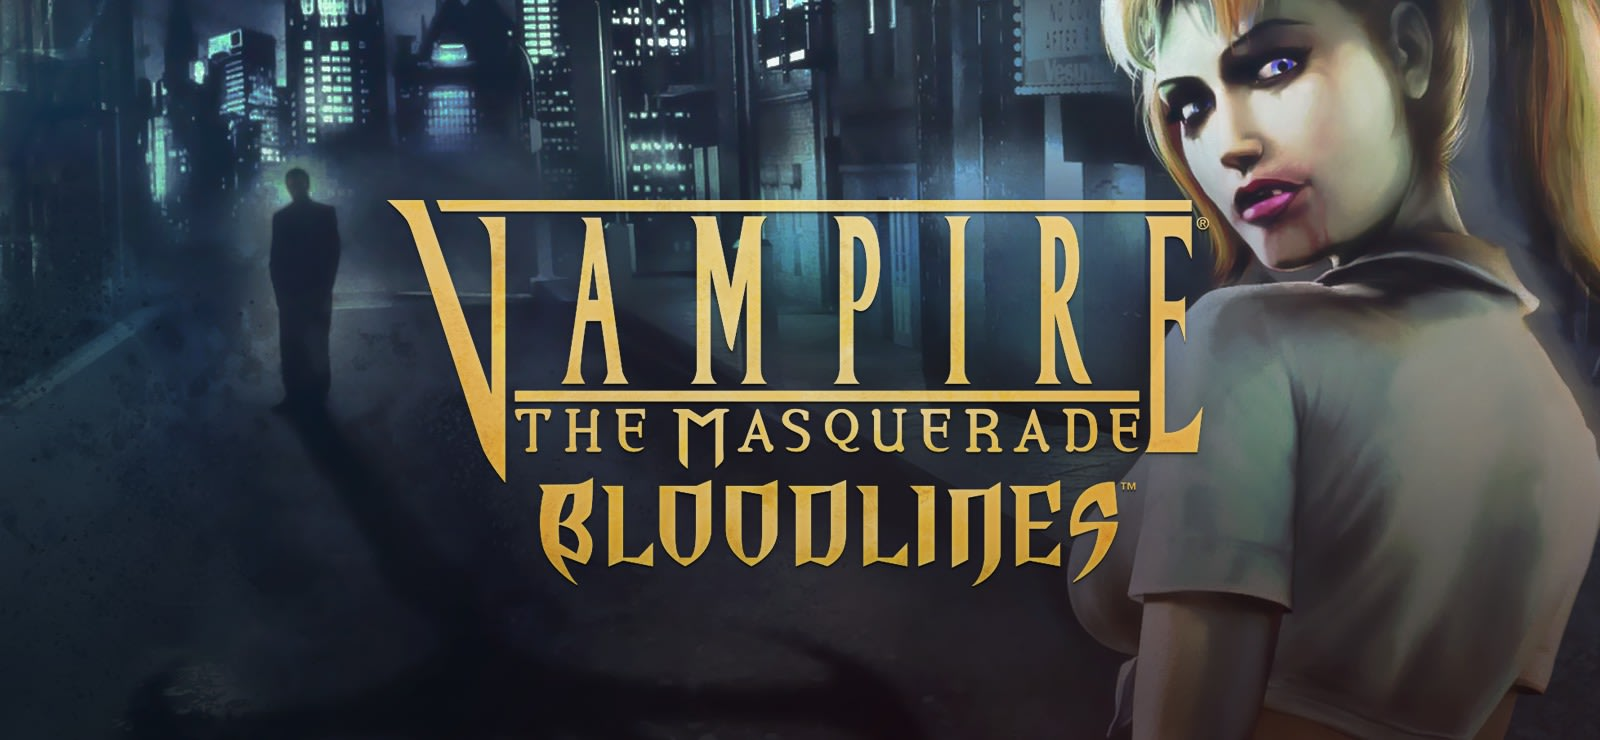 Vampire: The Masquerade - Bloodlines varies-with-device